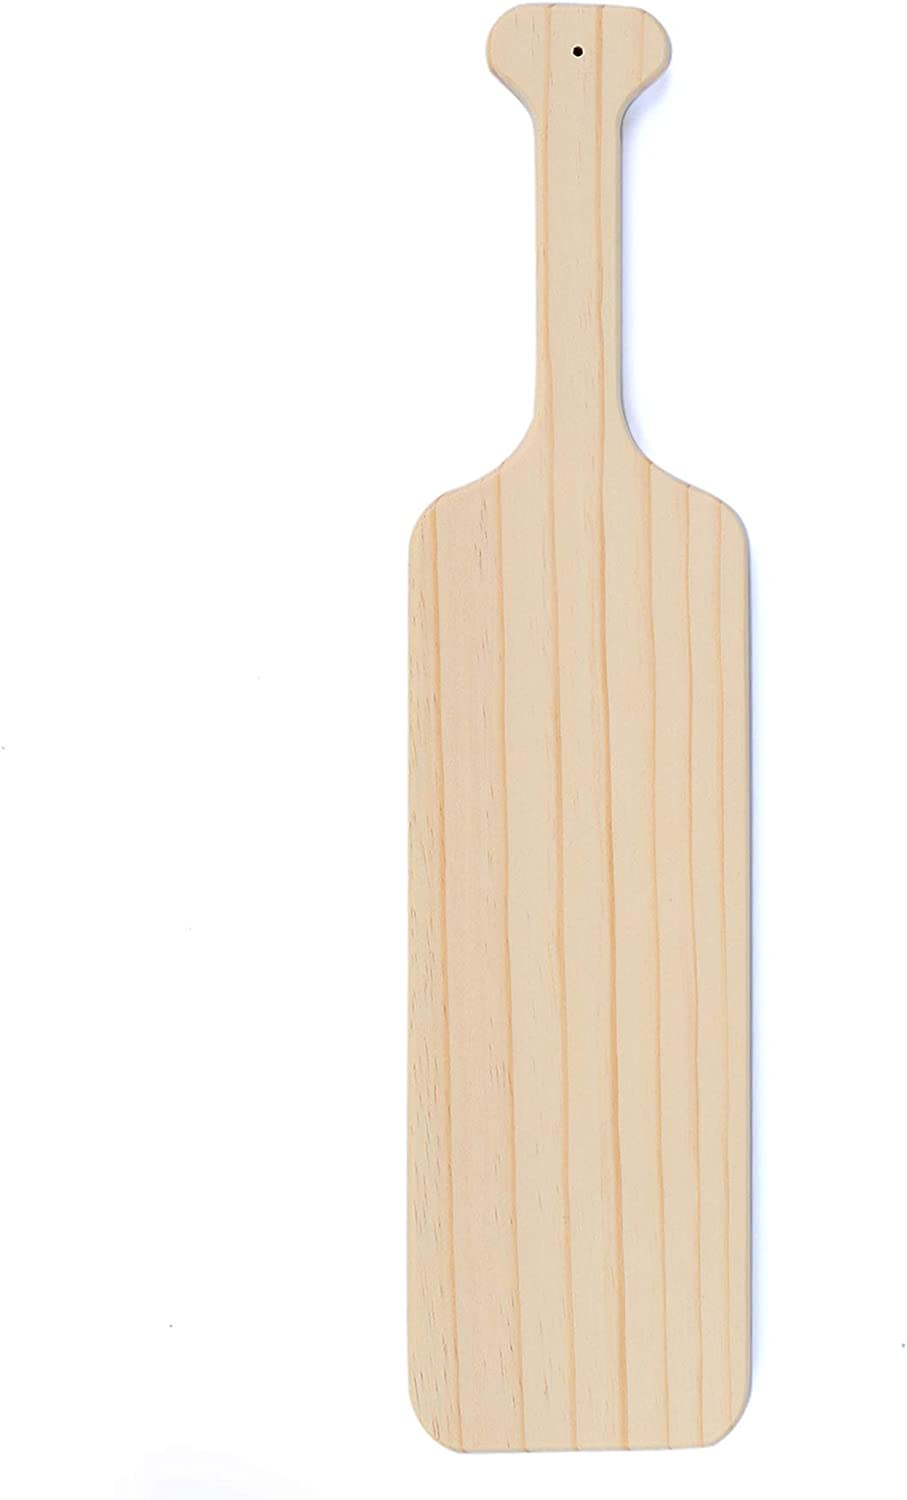 Battife Greek Fraternity Paddle 22 Inch Unfinished Pine 100% Solid Wooden Sorority Paddle